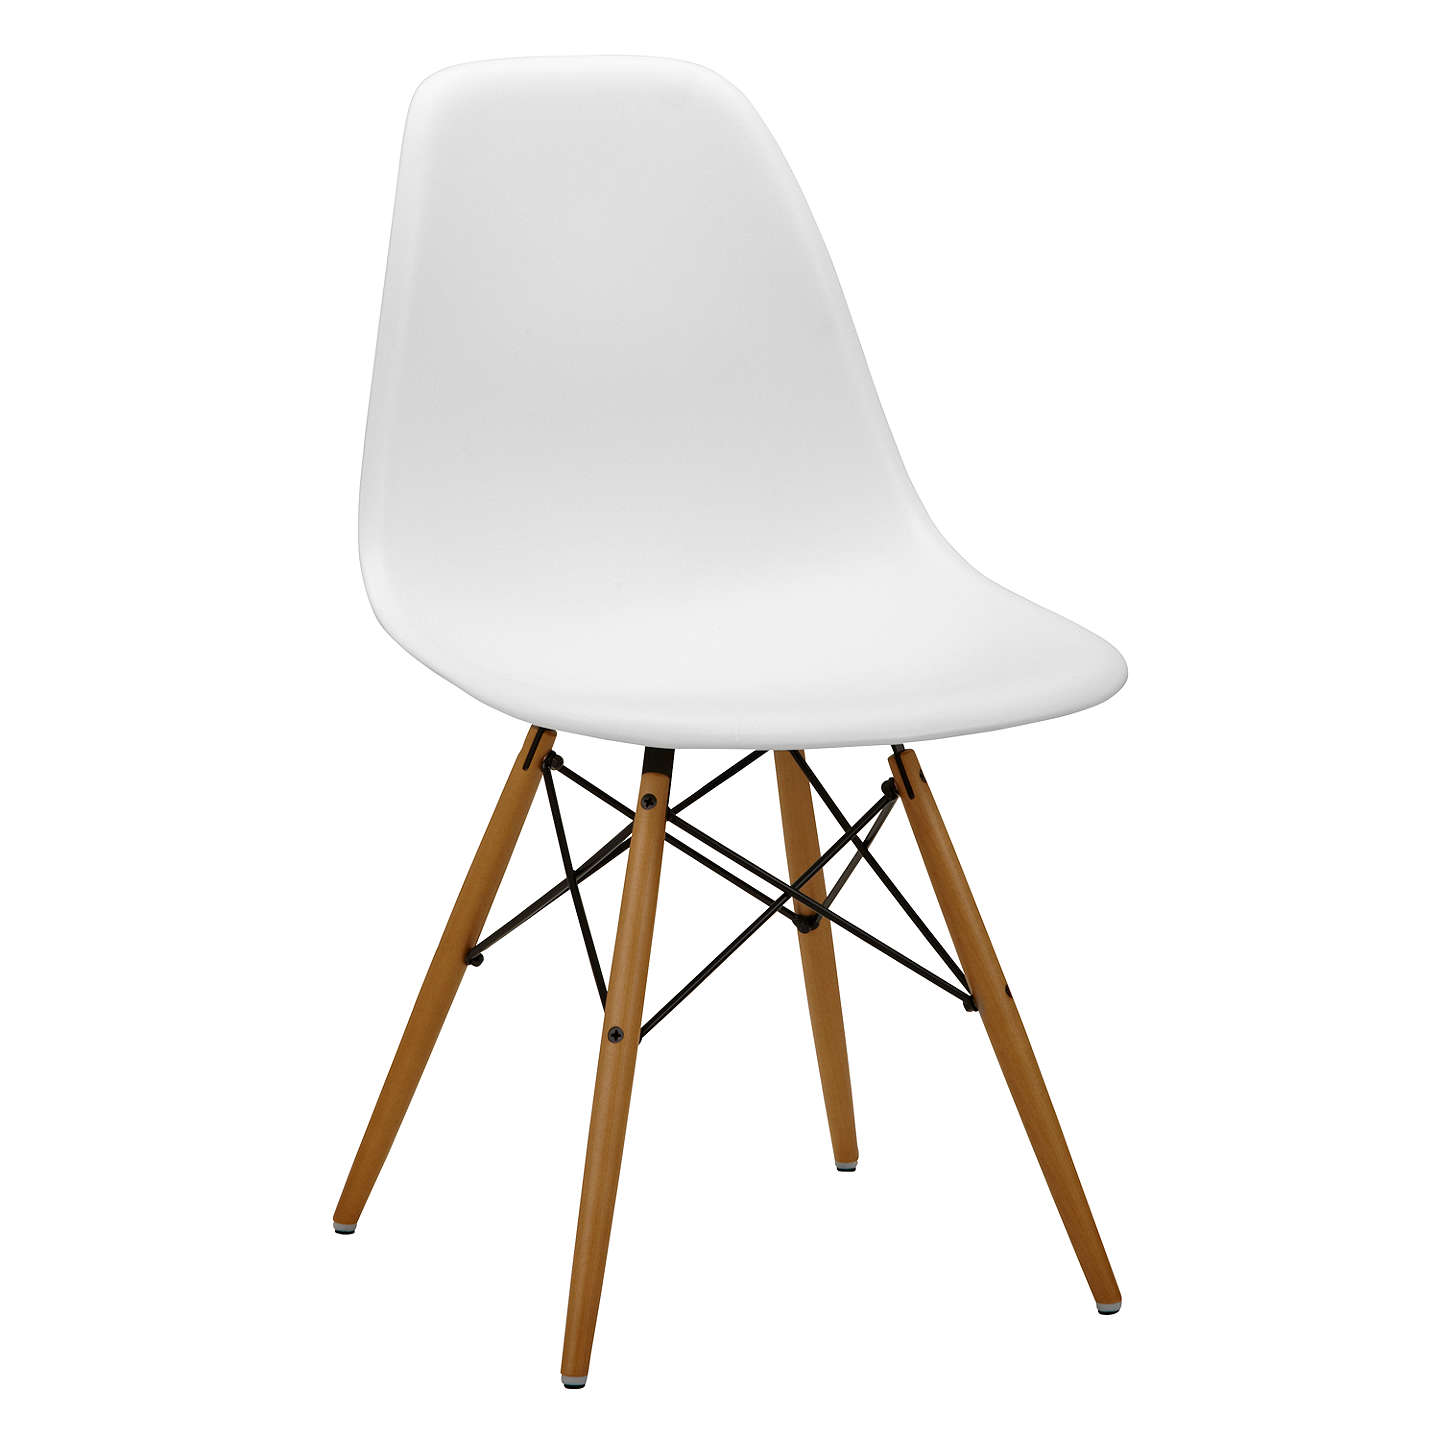 vitra eames dsw 43cm side chair at john lewis